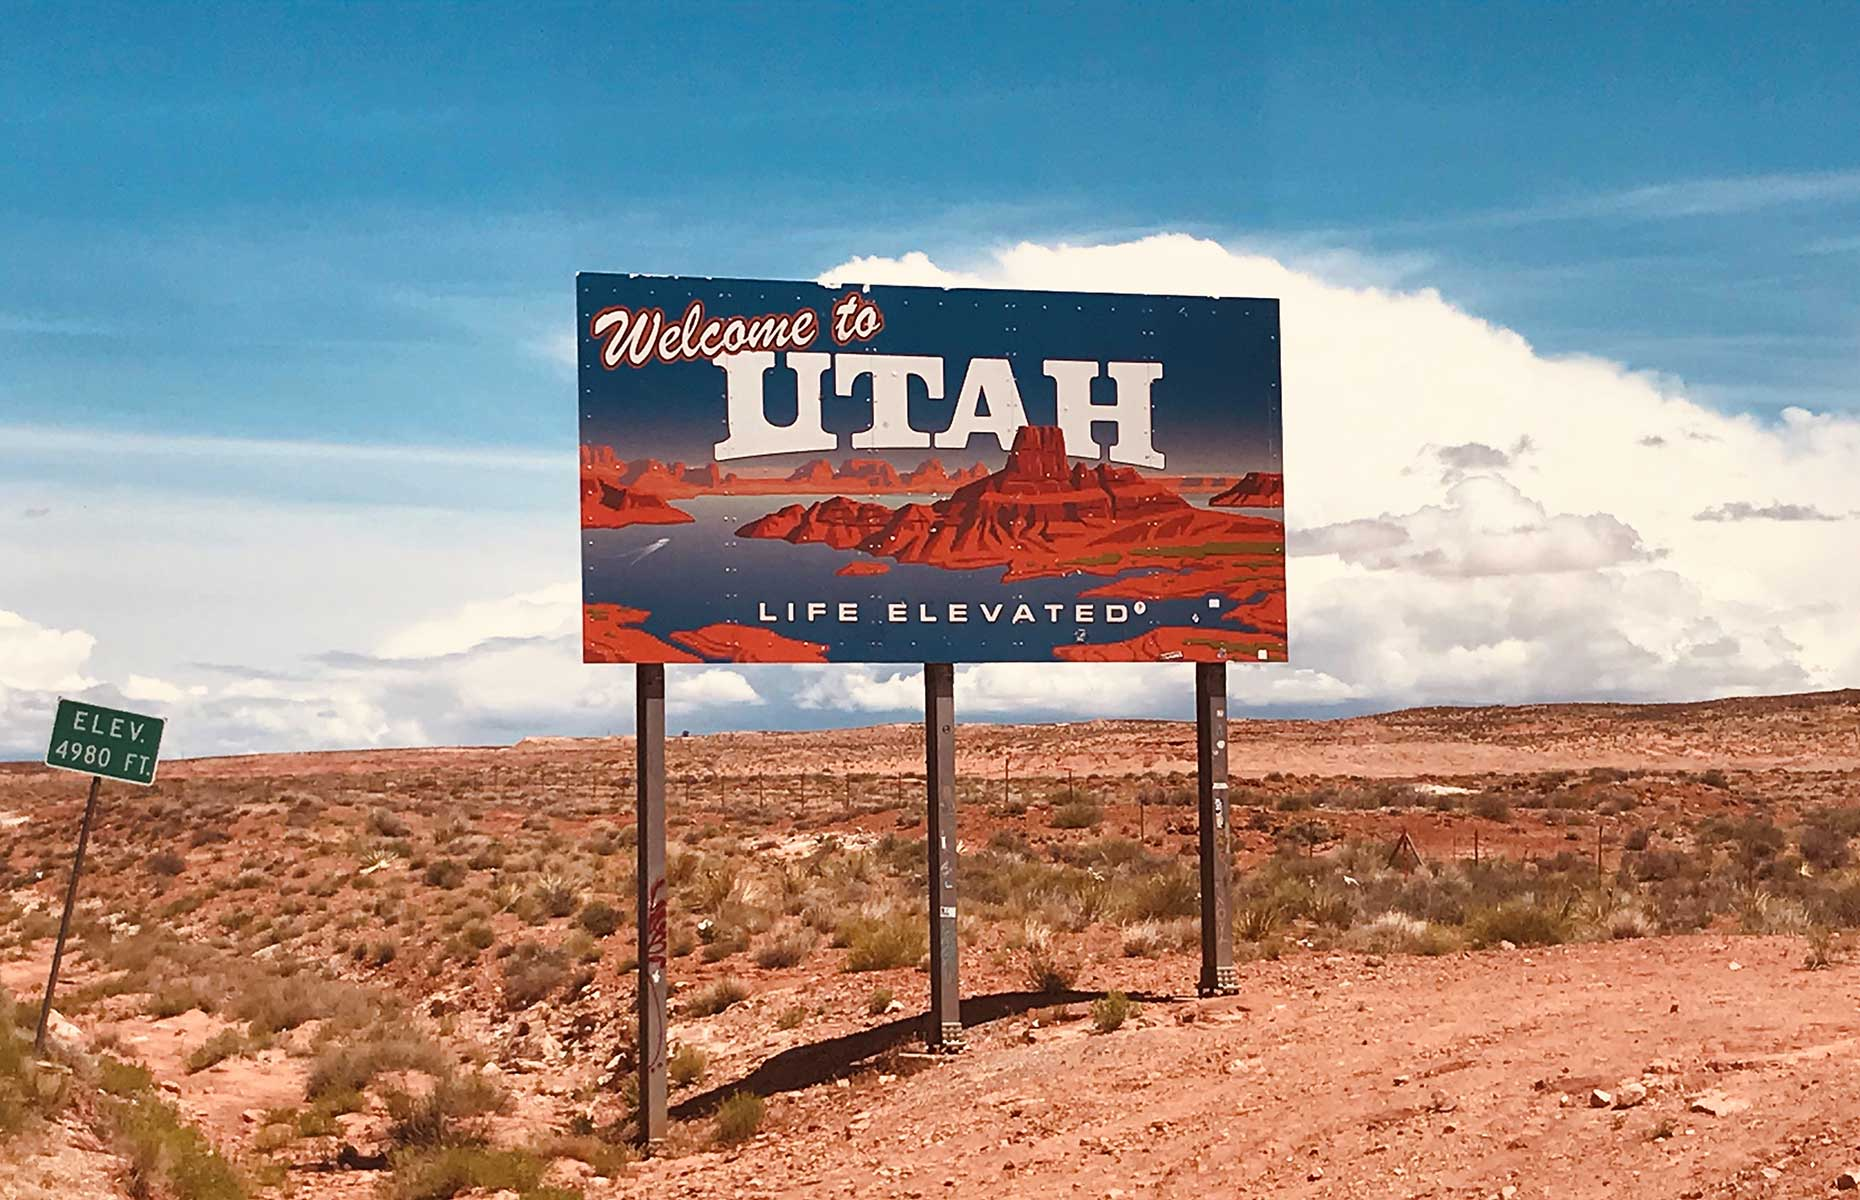 Utah state sign at the roadside